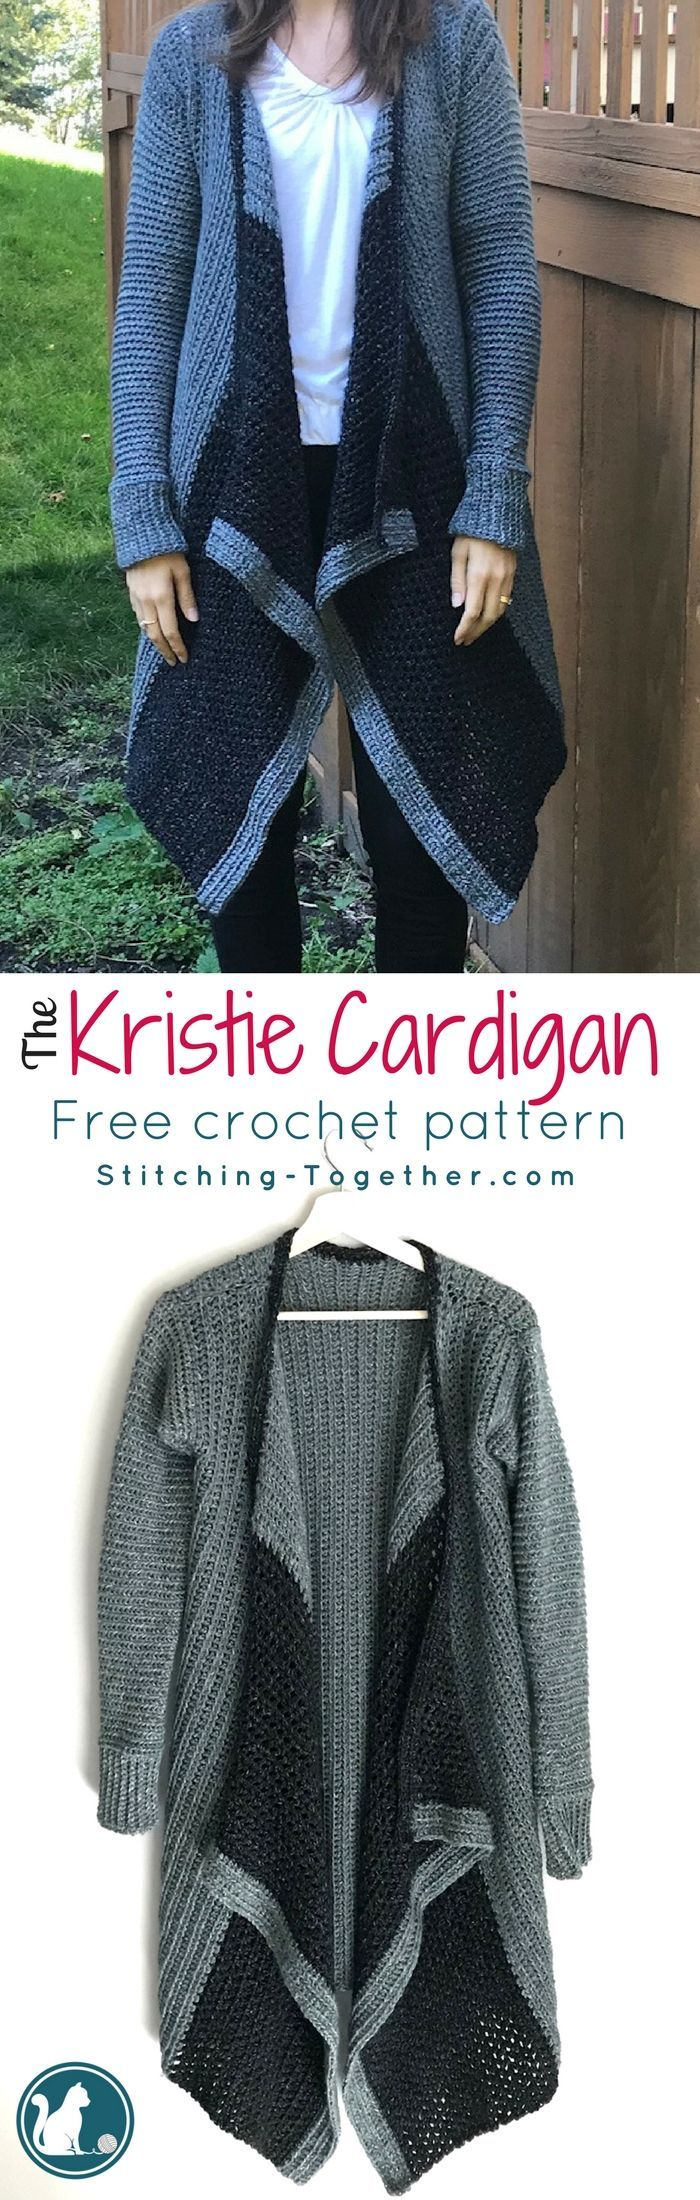 Free crochet pattern for an adorable blanket cardigan. This cardi is fashionable and functional. Made in Lion Brand Jeans Yarn it is soft, warm and comfortable. The cascading effect makes a beautiful flowing sweater | crochet cardigan | #crochet